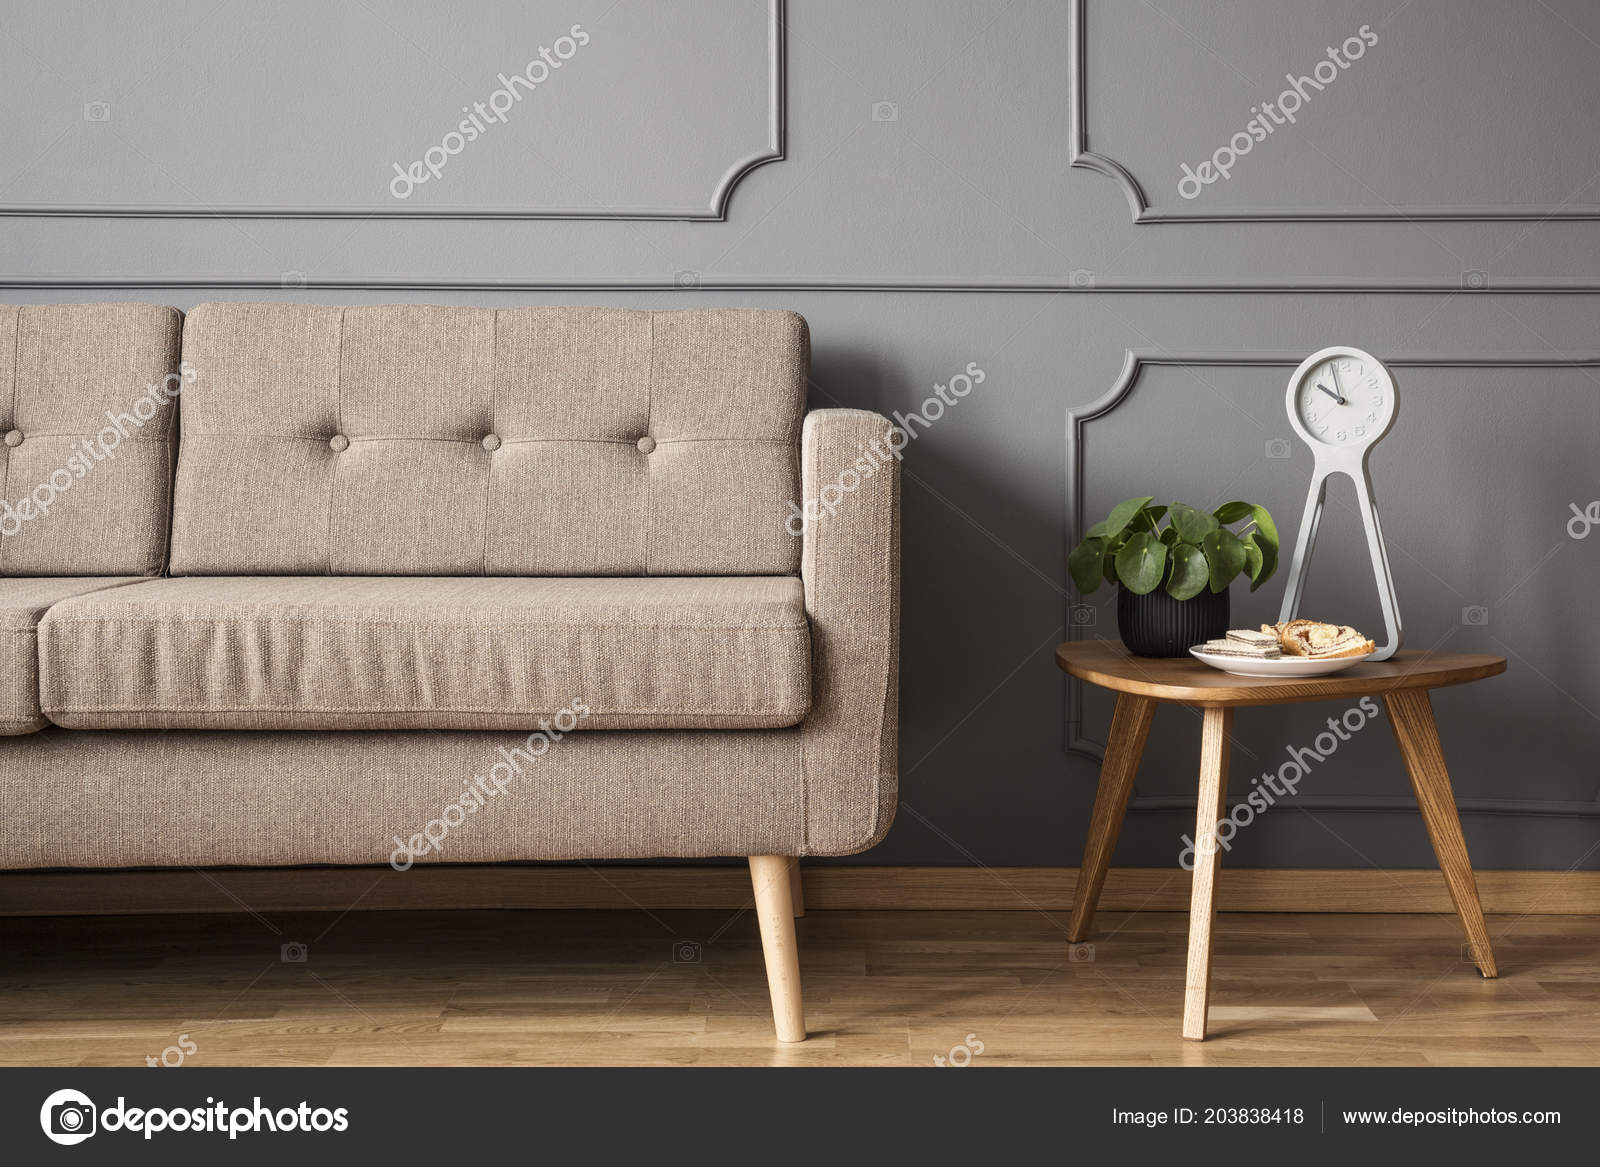 Bemerkenswert Retrosofa Sammlung Von Real Photo Retro Sofa Standing Next Small